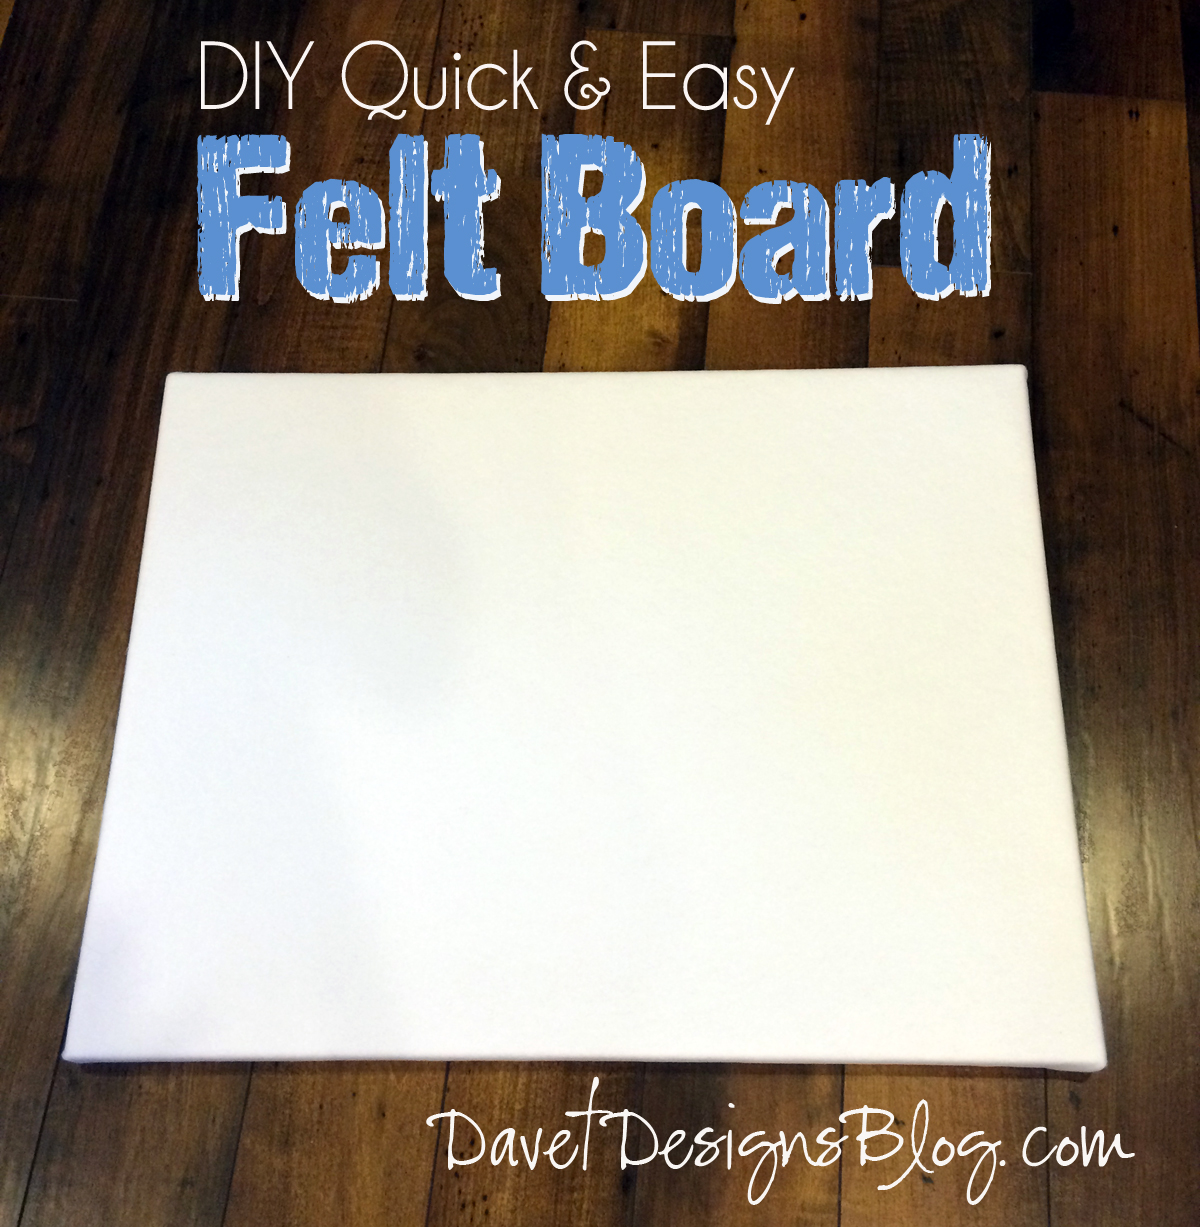 DIY Quick & Easy Felt Board